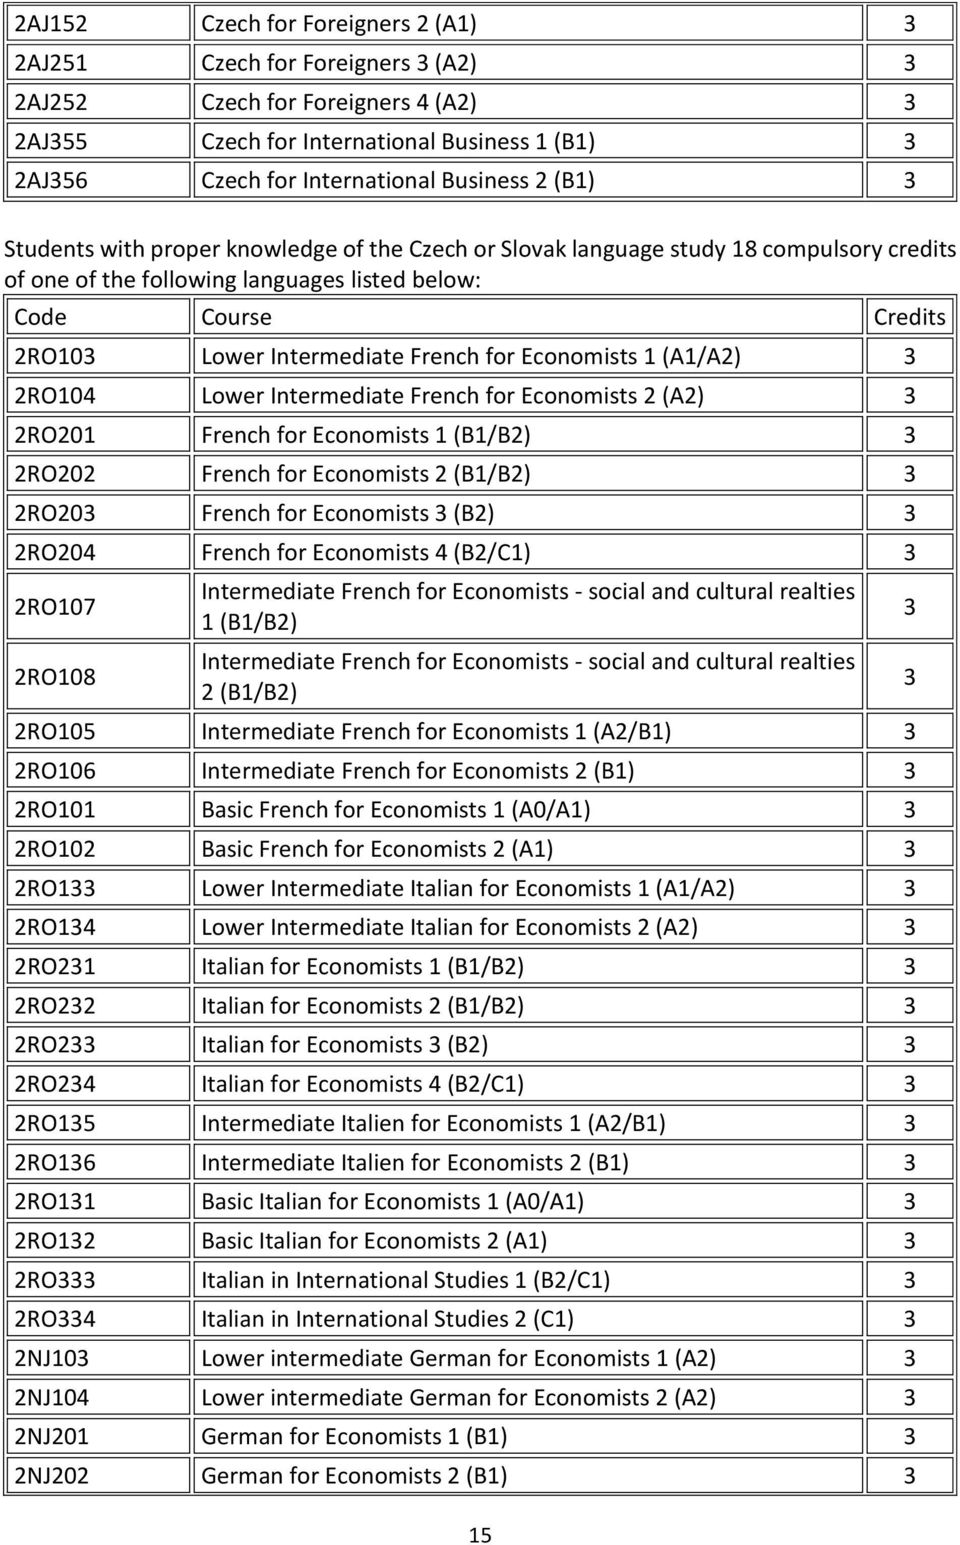 French for Economists 1 (A1/A2) 3 2RO104 Lower Intermediate French for Economists 2 (A2) 3 2RO201 French for Economists 1 (B1/B2) 3 2RO202 French for Economists 2 (B1/B2) 3 2RO203 French for